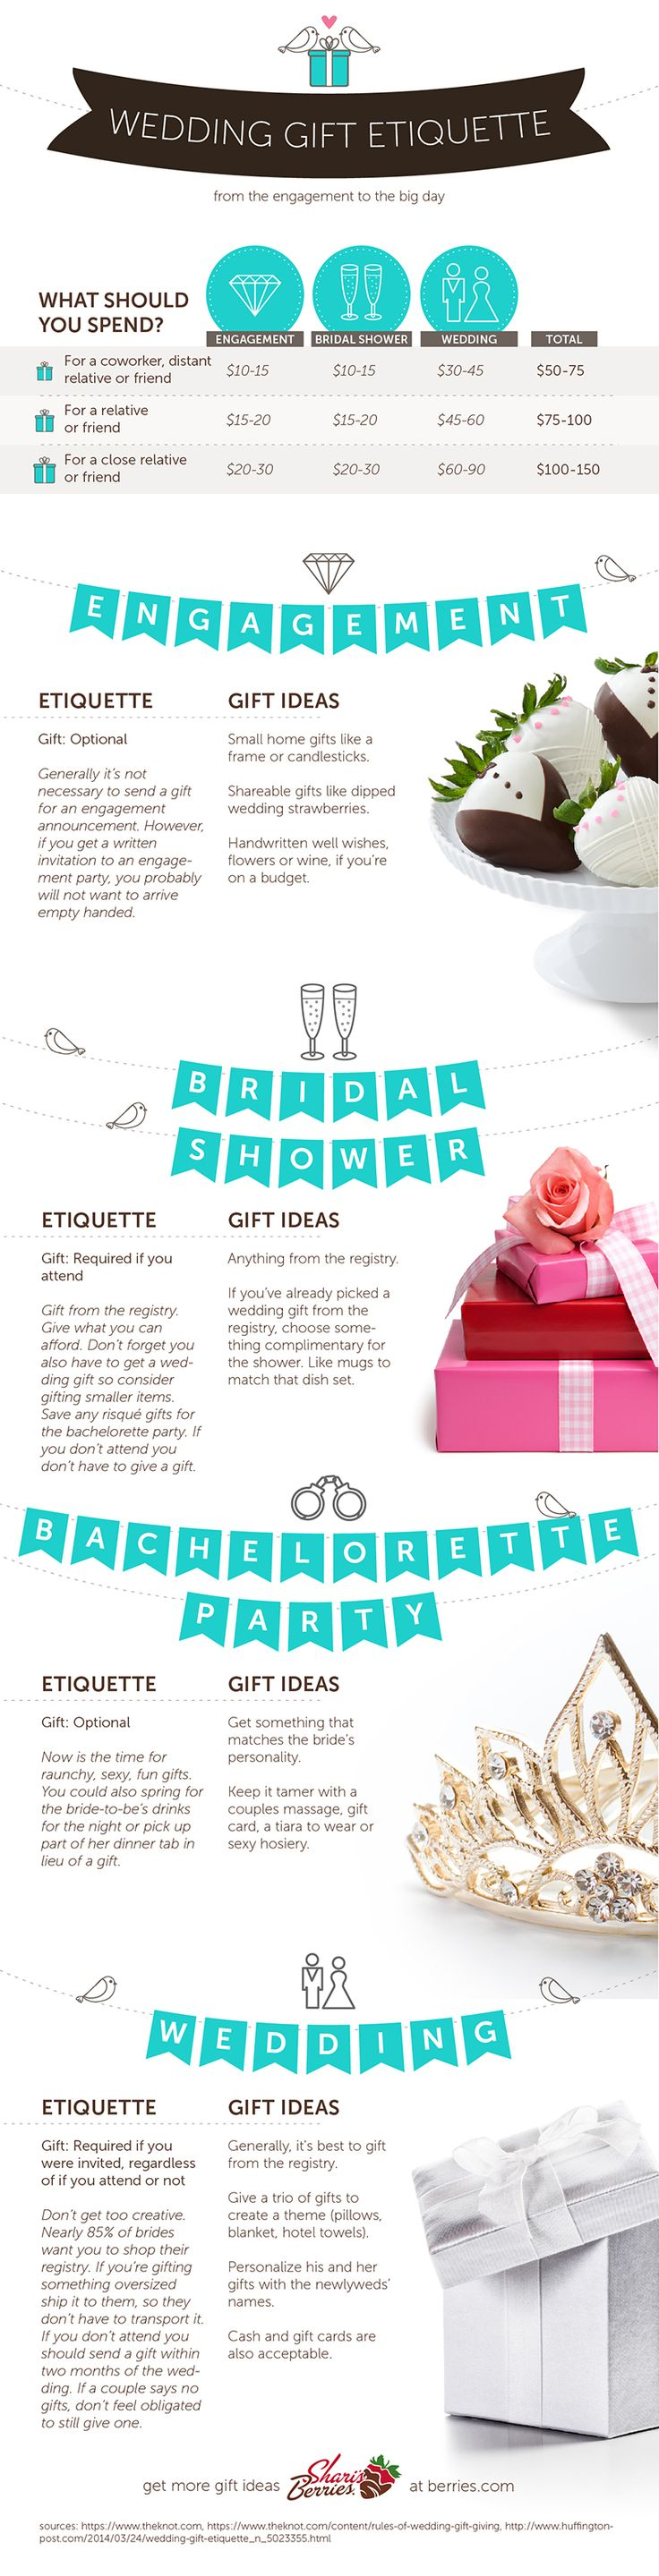 Wedding Gift Etiquette for a wedding gift, bridal shower gift or engagement gift. http://www.mydreamlines.com/category/blog/